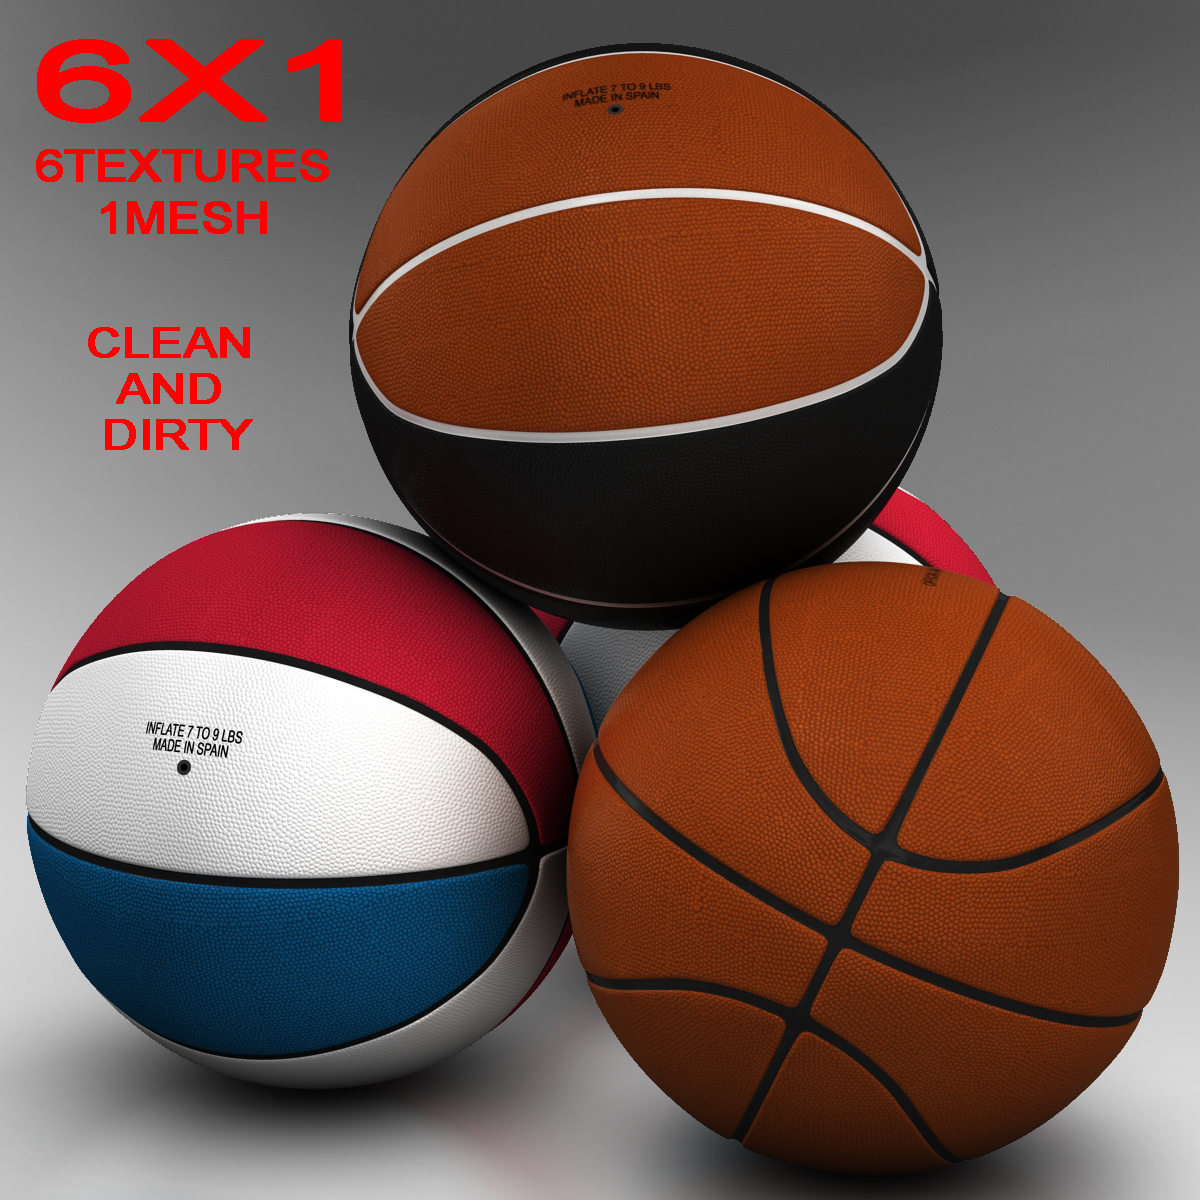 standardní basketbalový míč 3d model 3ds max fbx c4d ma mb obj 164706